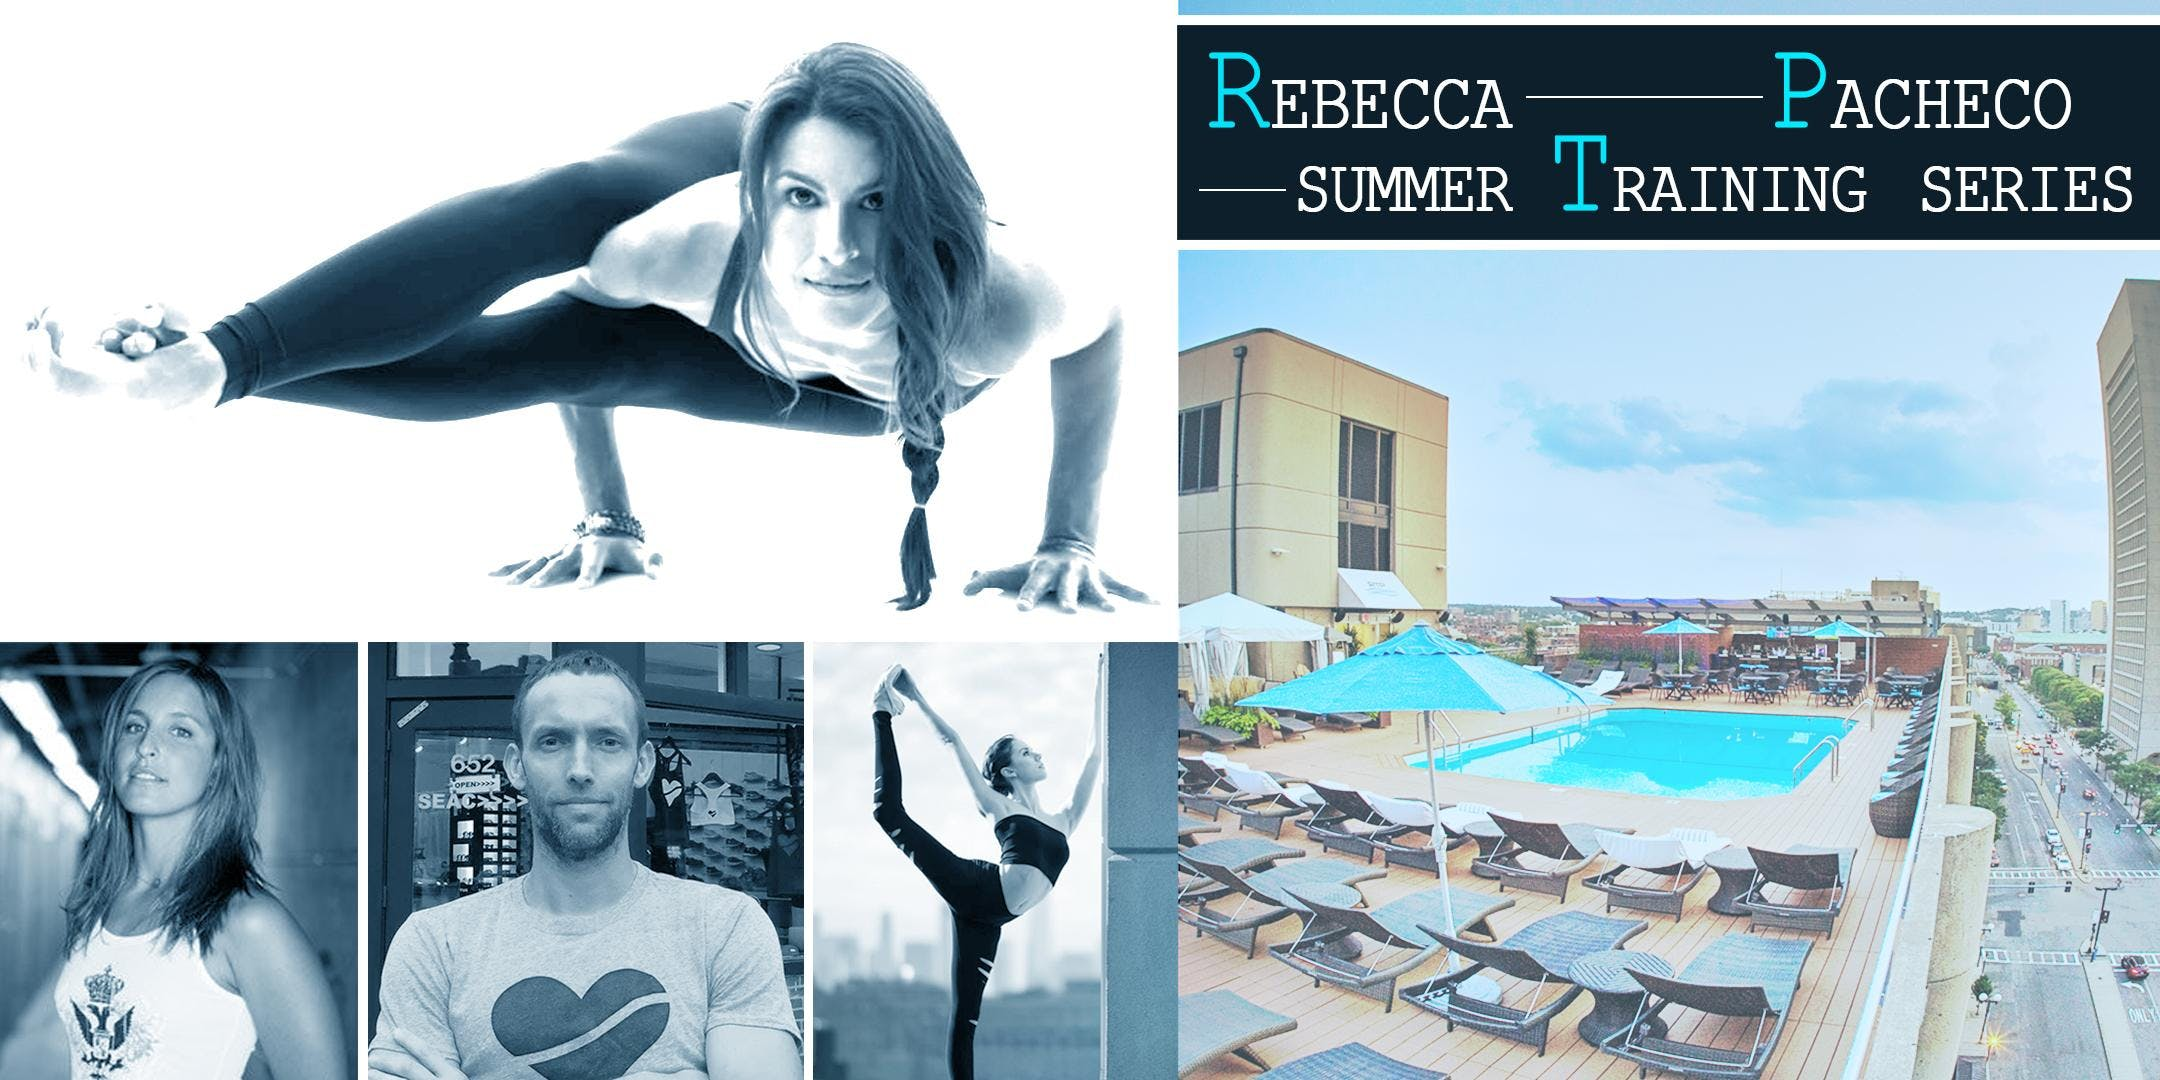 Rebecca Pacheco: Summer Training Series